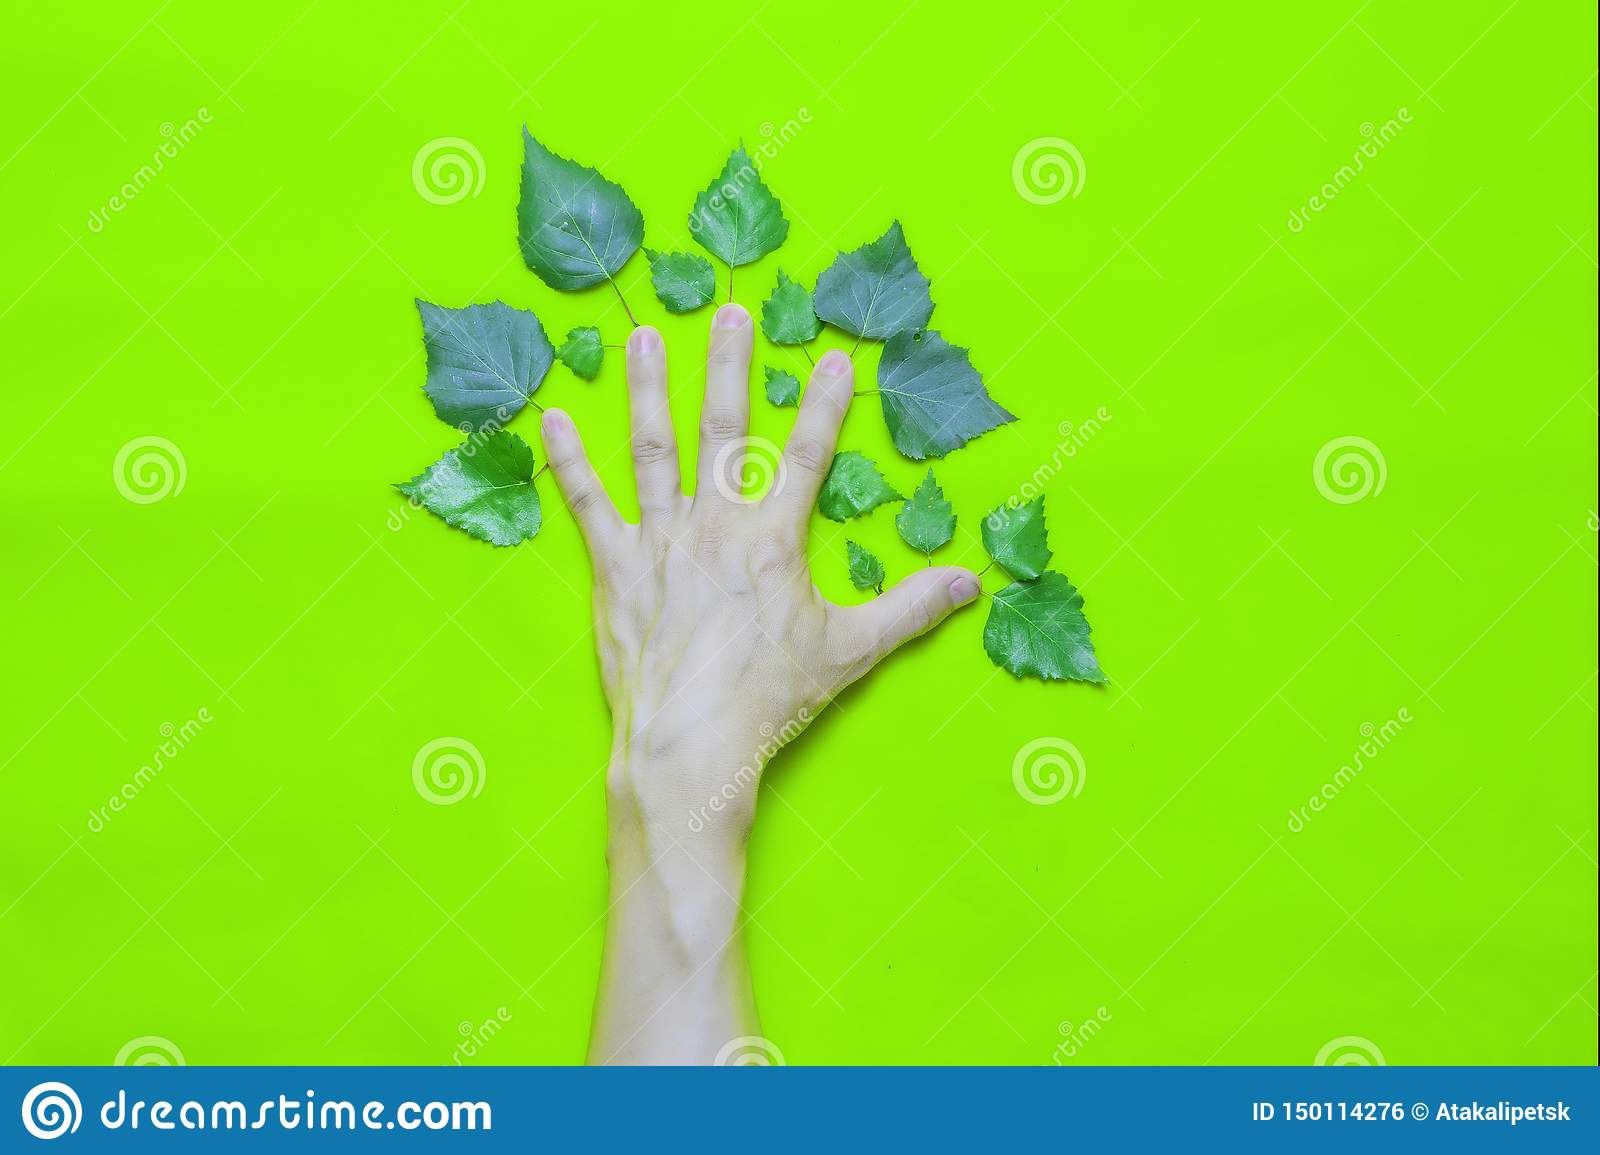 Corporate environmental responsibility concept: Human Hand with leaves in the form of a tree on a green background.